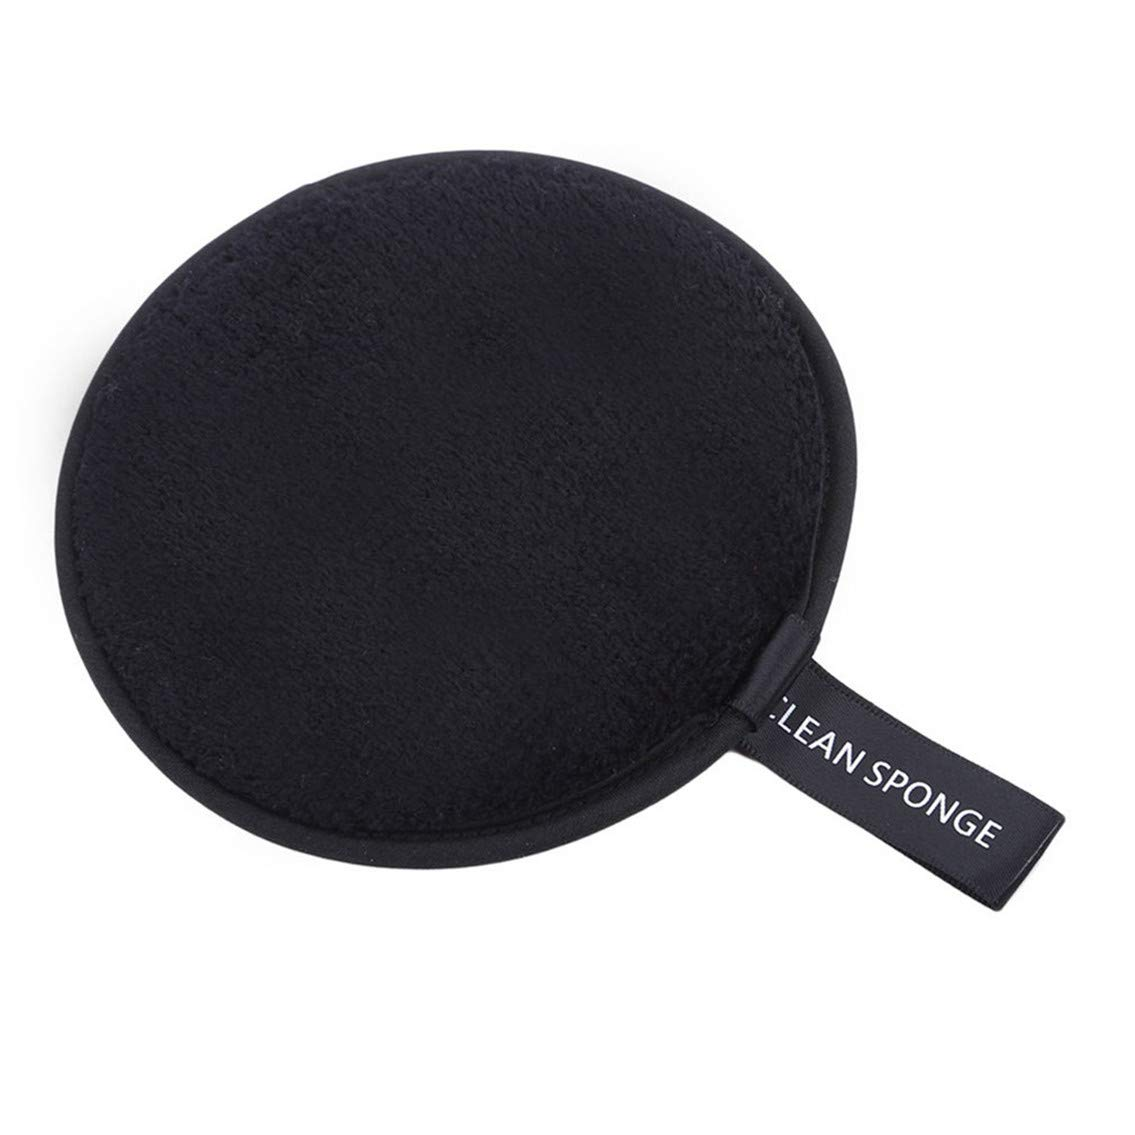 Weiy Makeup Puff Microfiber Cloth Pads Remover Towel Face Cleansing Cosmetics Tool Beauty